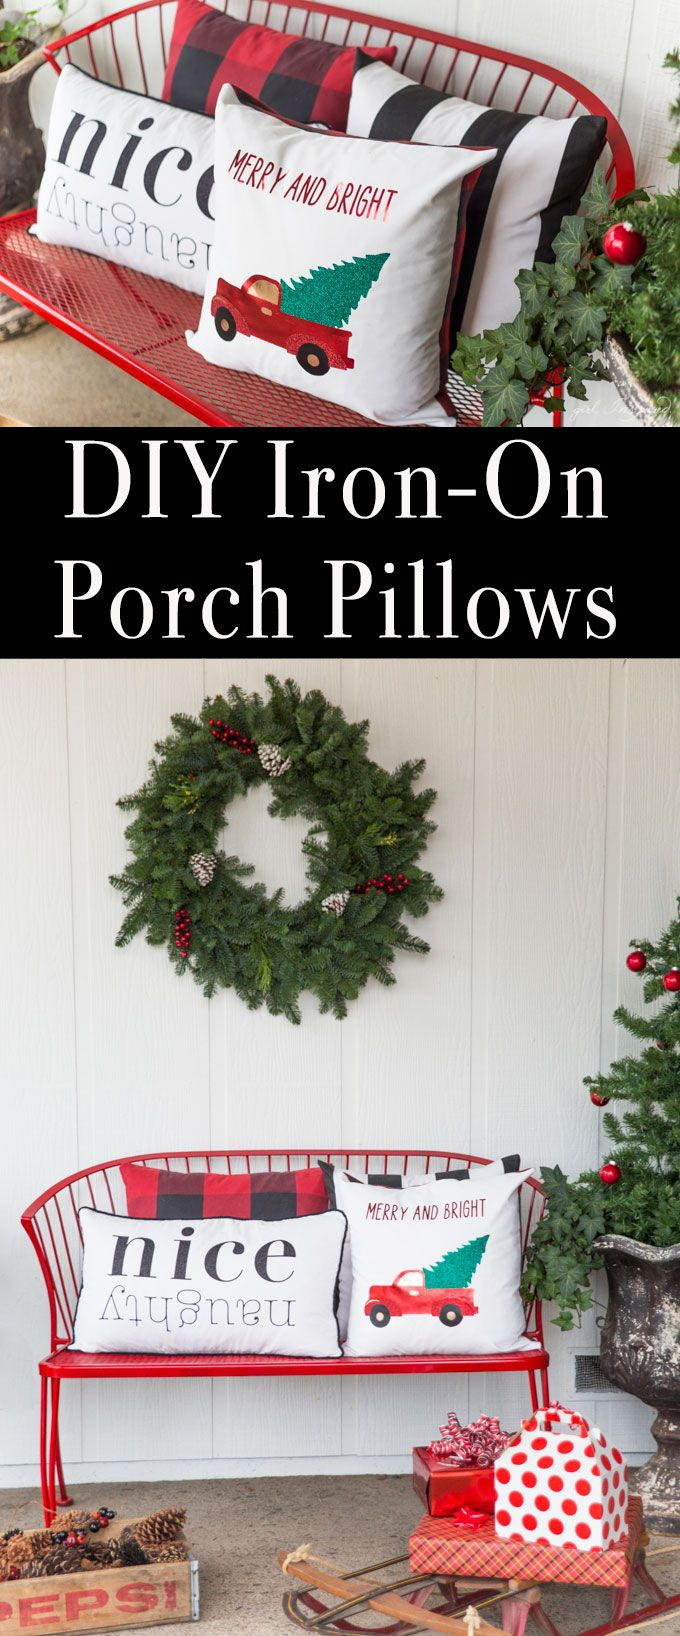 Create these festive and beautiful DIY Christmas pillows with custom iron-on designs. #cricut #ad #home #decor #home